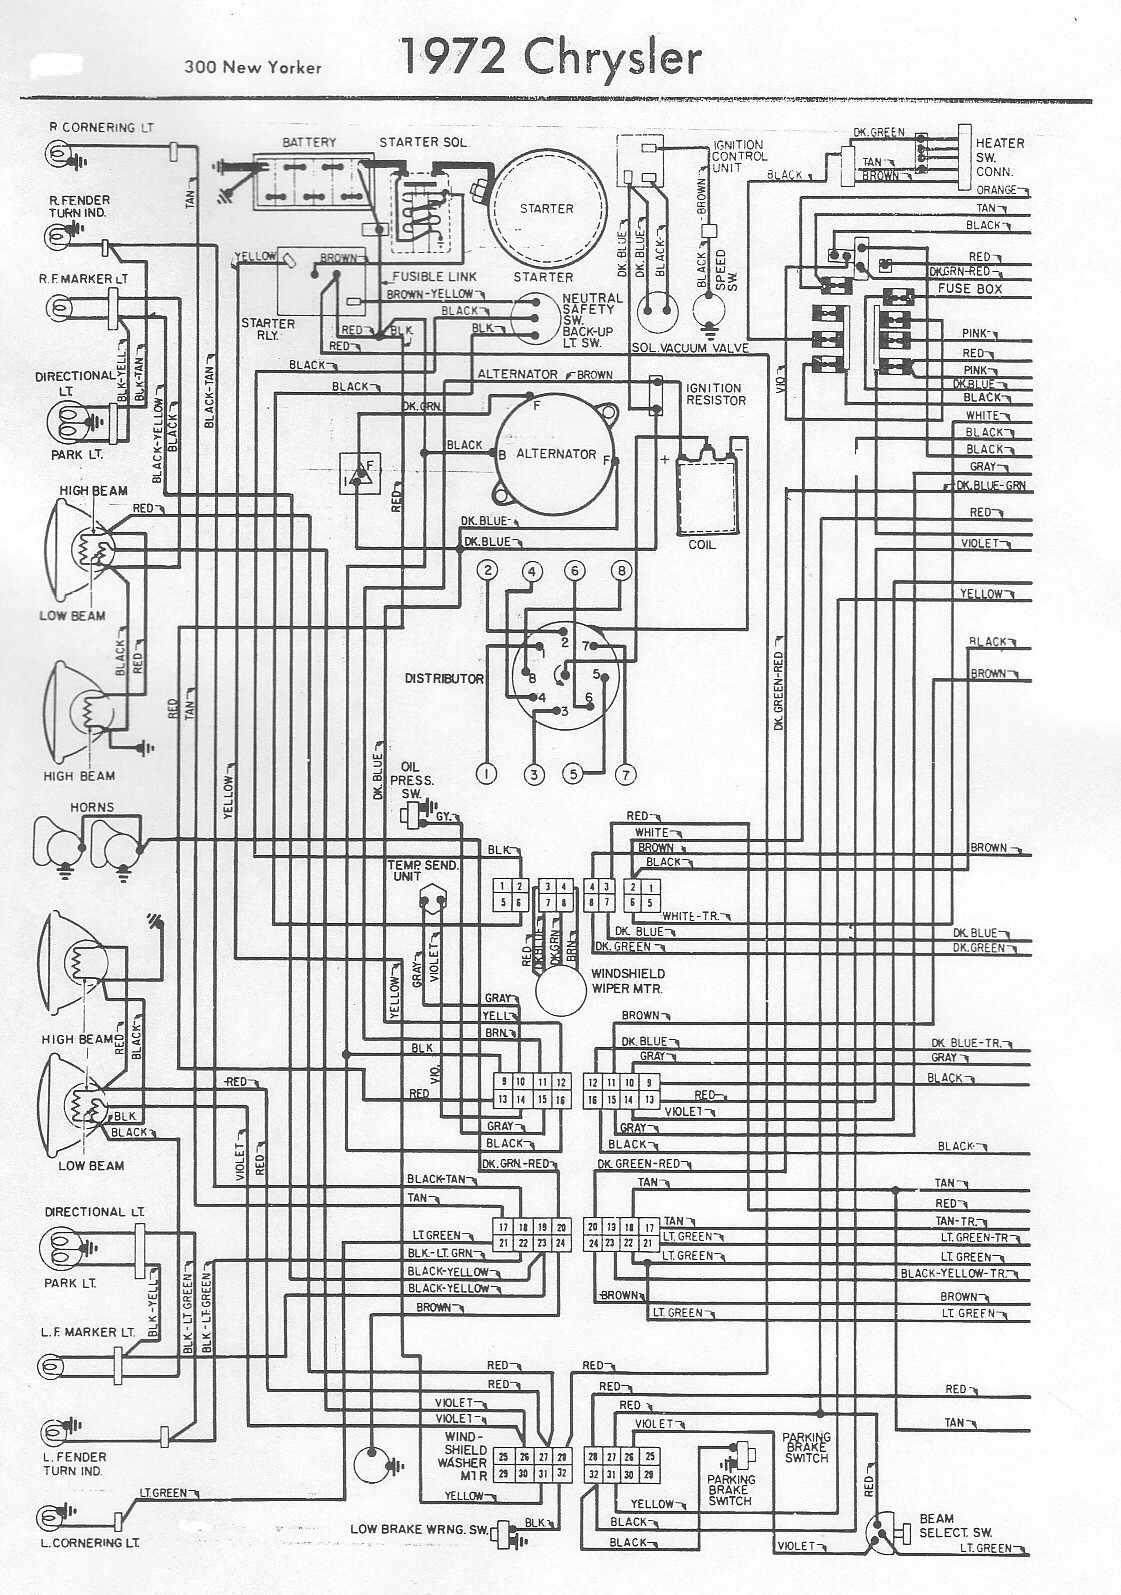 Mercedes Benz Wiring Colours 1995 Radio Wire Color Codes Trusted Diagram 1972 Schematic Custom U2022 For Car Stereos